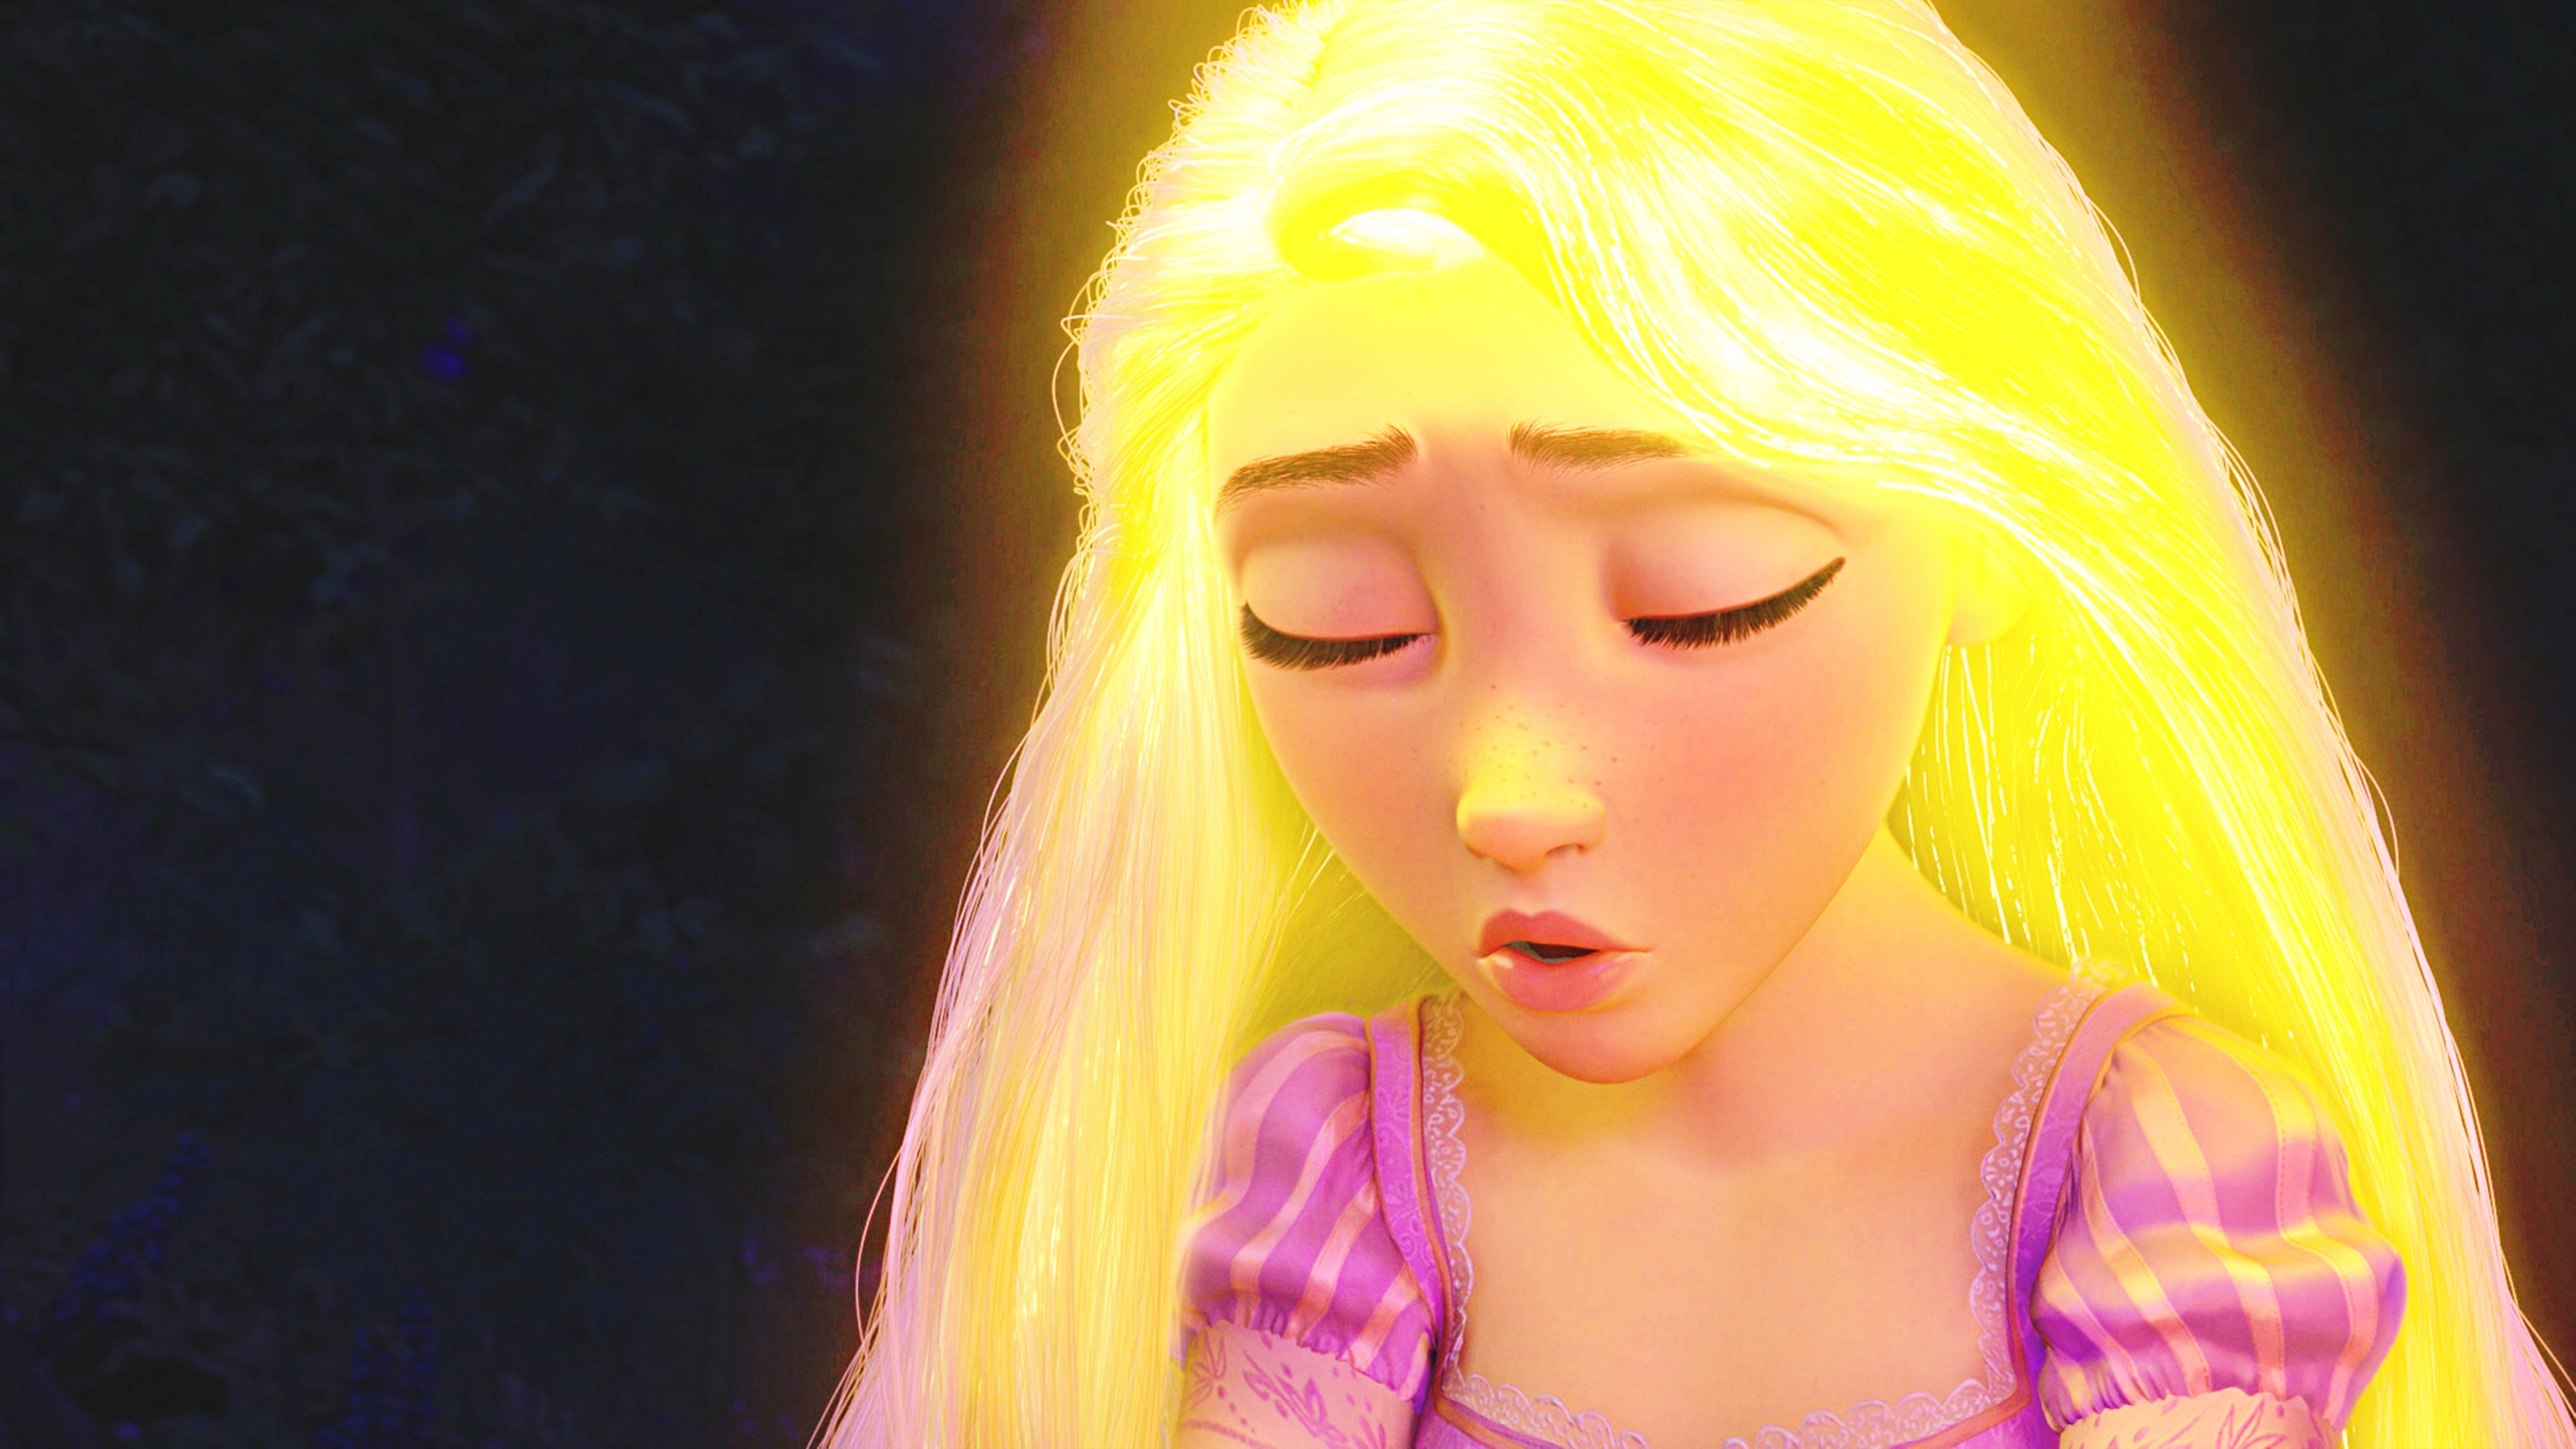 Walt Disney Characters Images   Icons, Wallpapers and ... Disney Rapunzel Screencaps